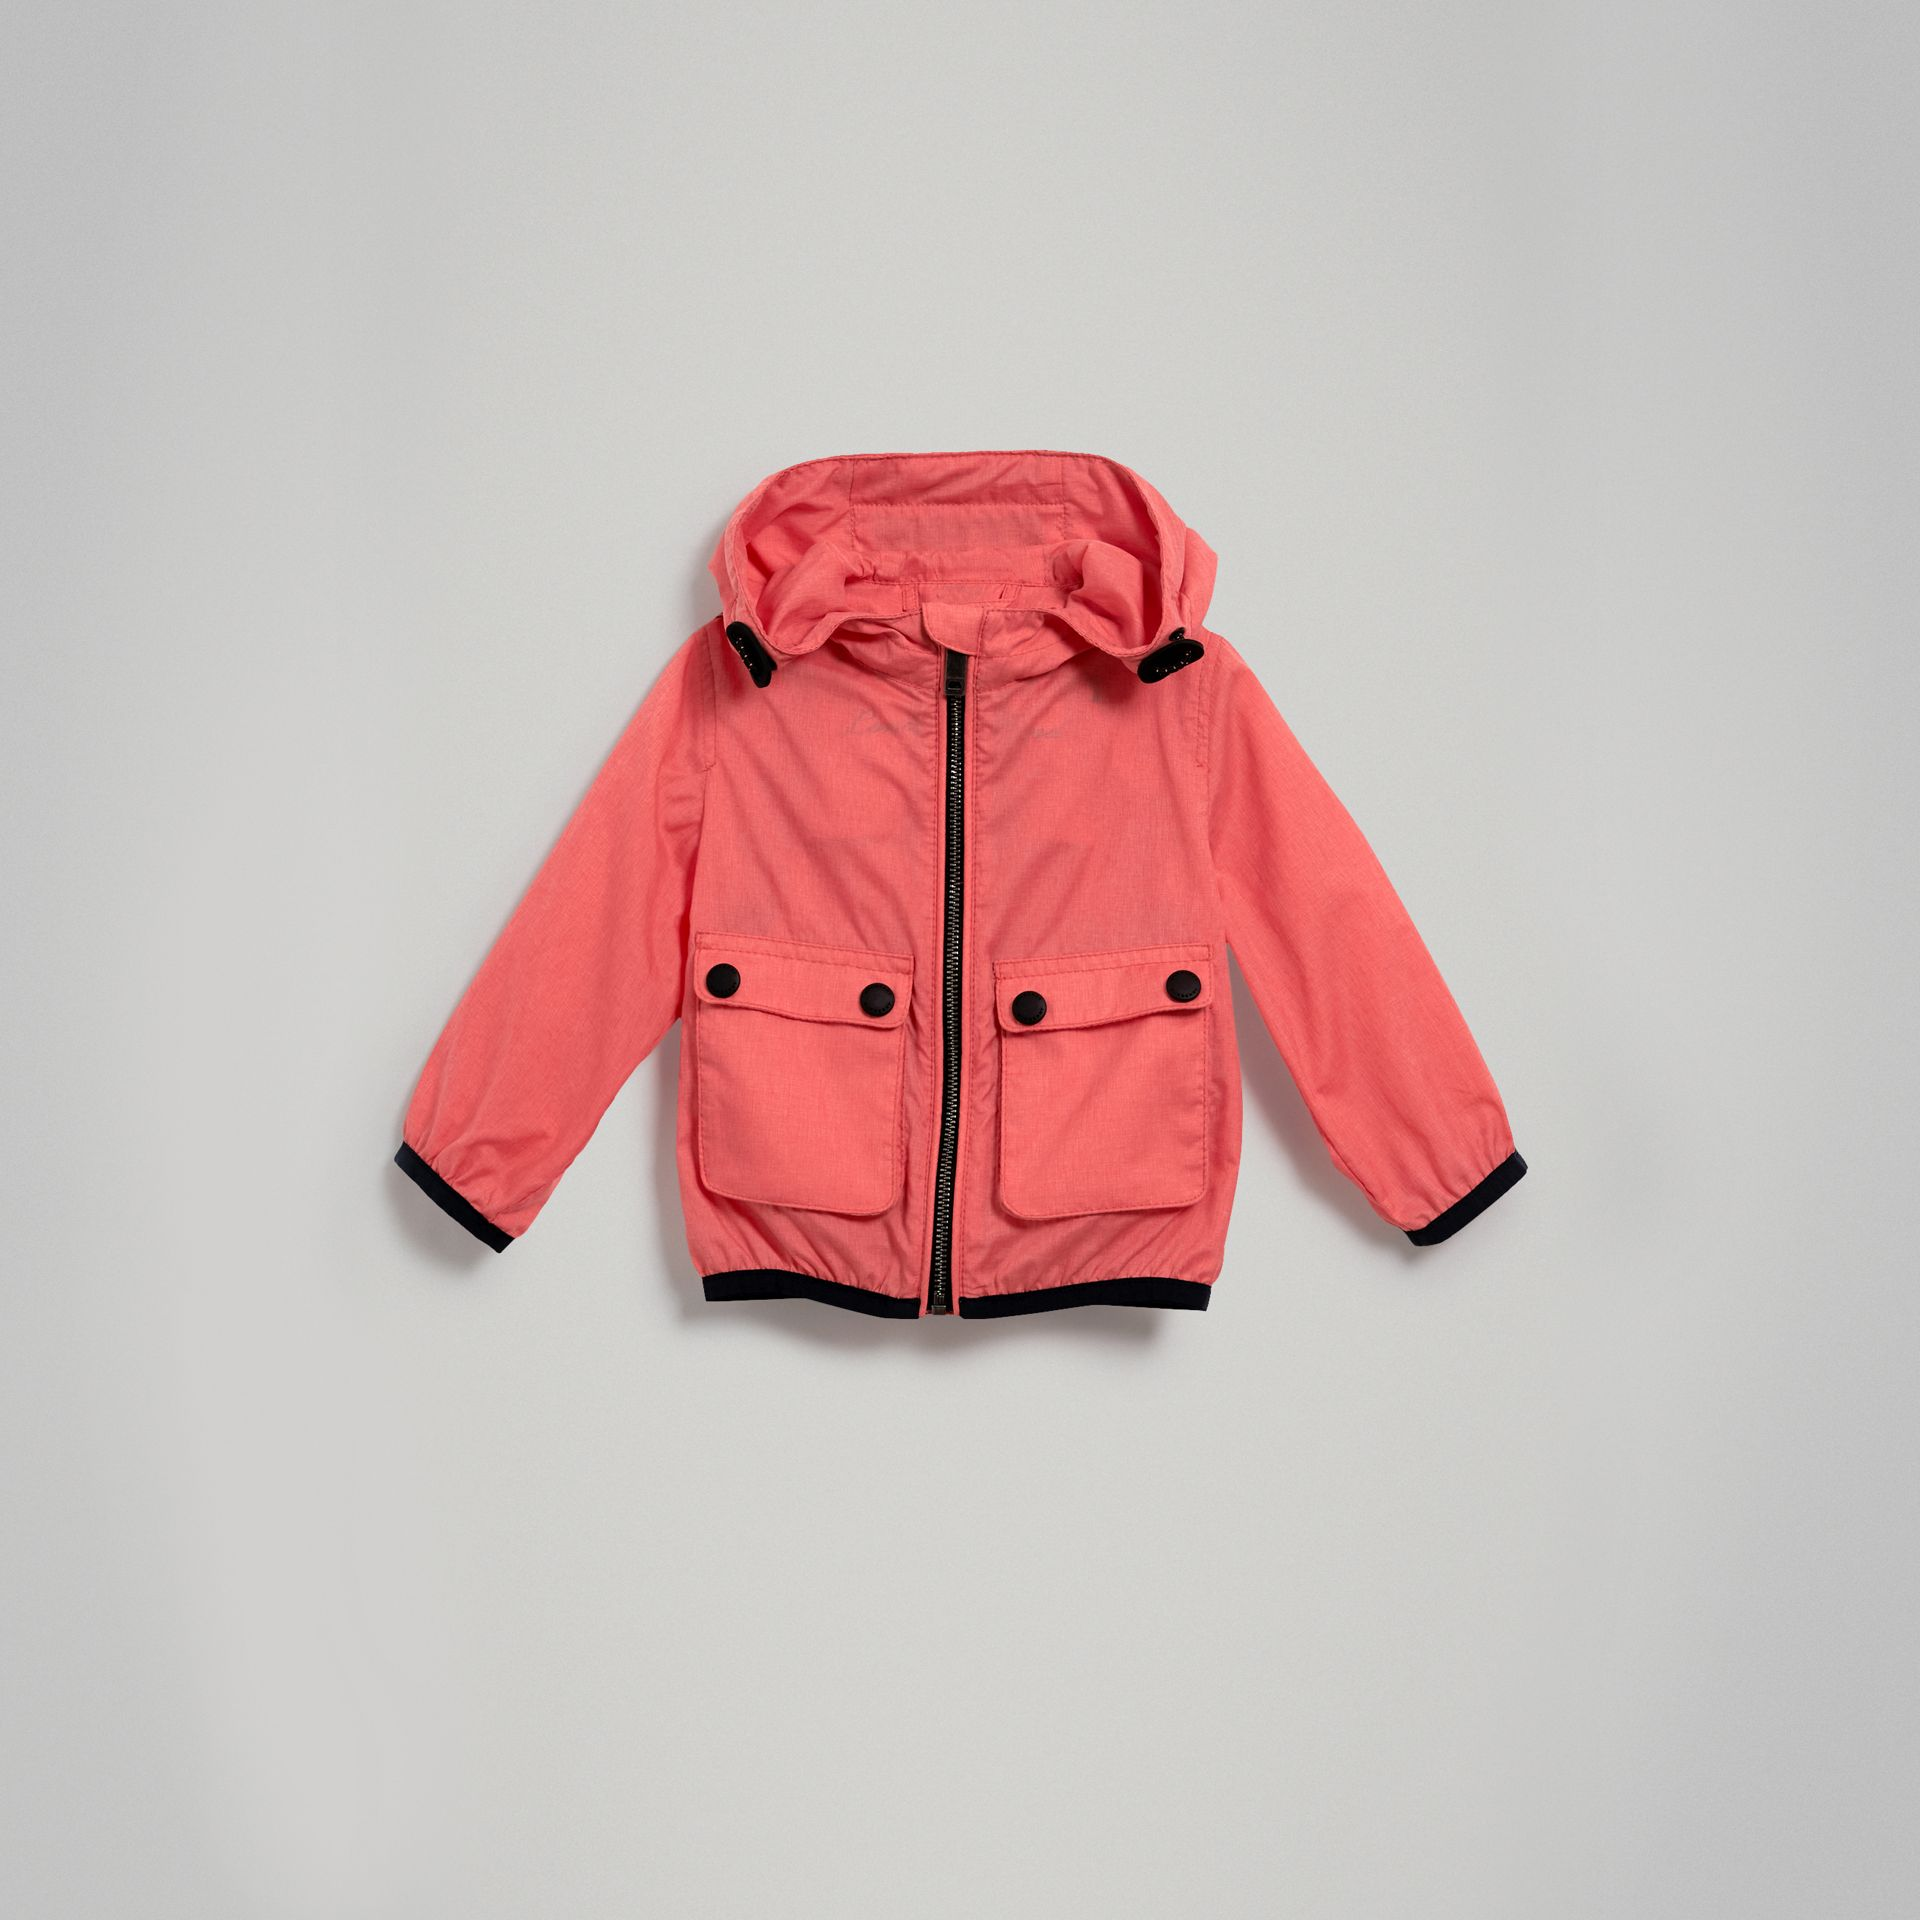 Showerproof Hooded Jacket in Bright Coral Pink - Children | Burberry - gallery image 0